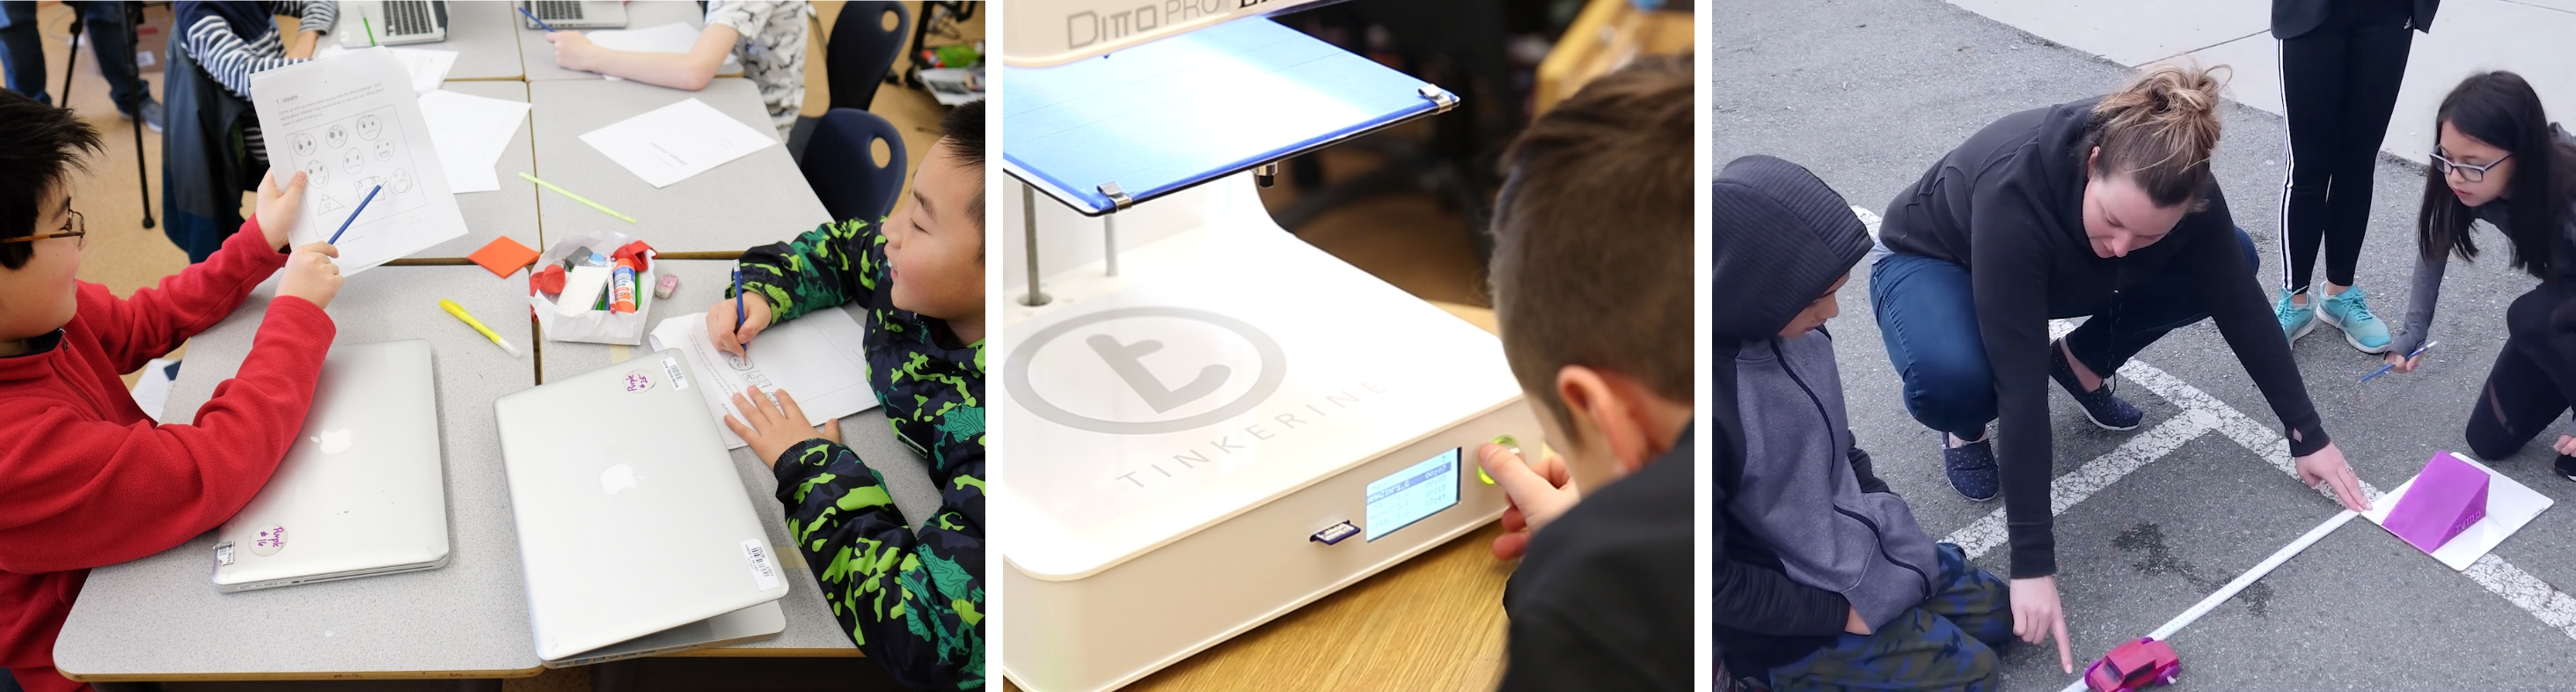 Students utilizing 3d printing in classrooms with their teacher